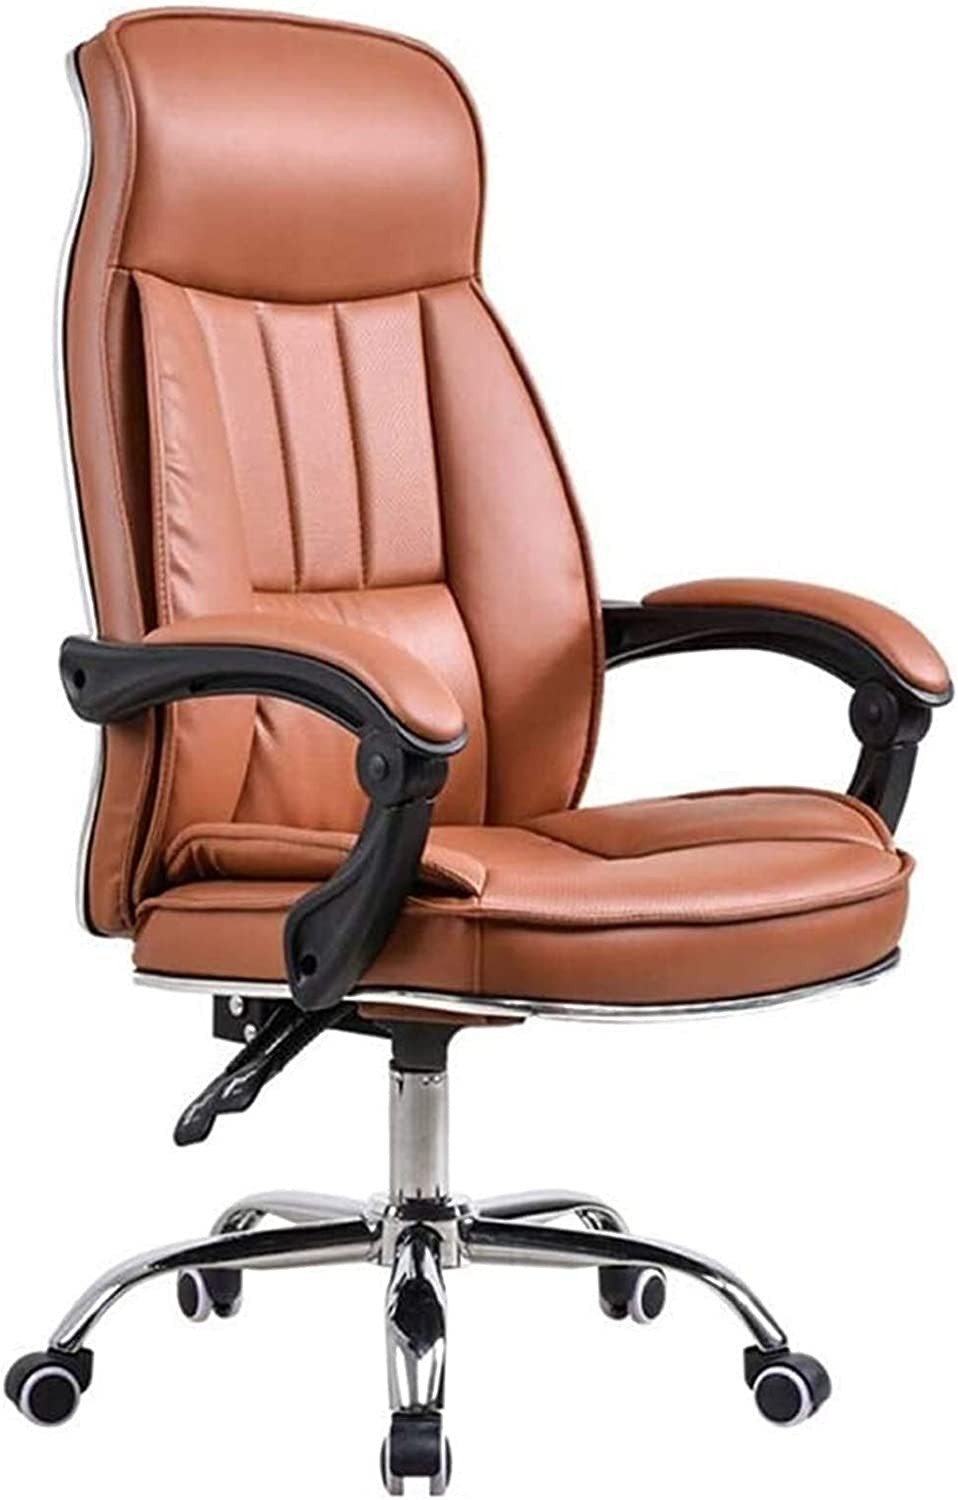 DJDLLZY Home Office Desk Chairs Super special price O Game Columbus Mall Video Gaming Chair